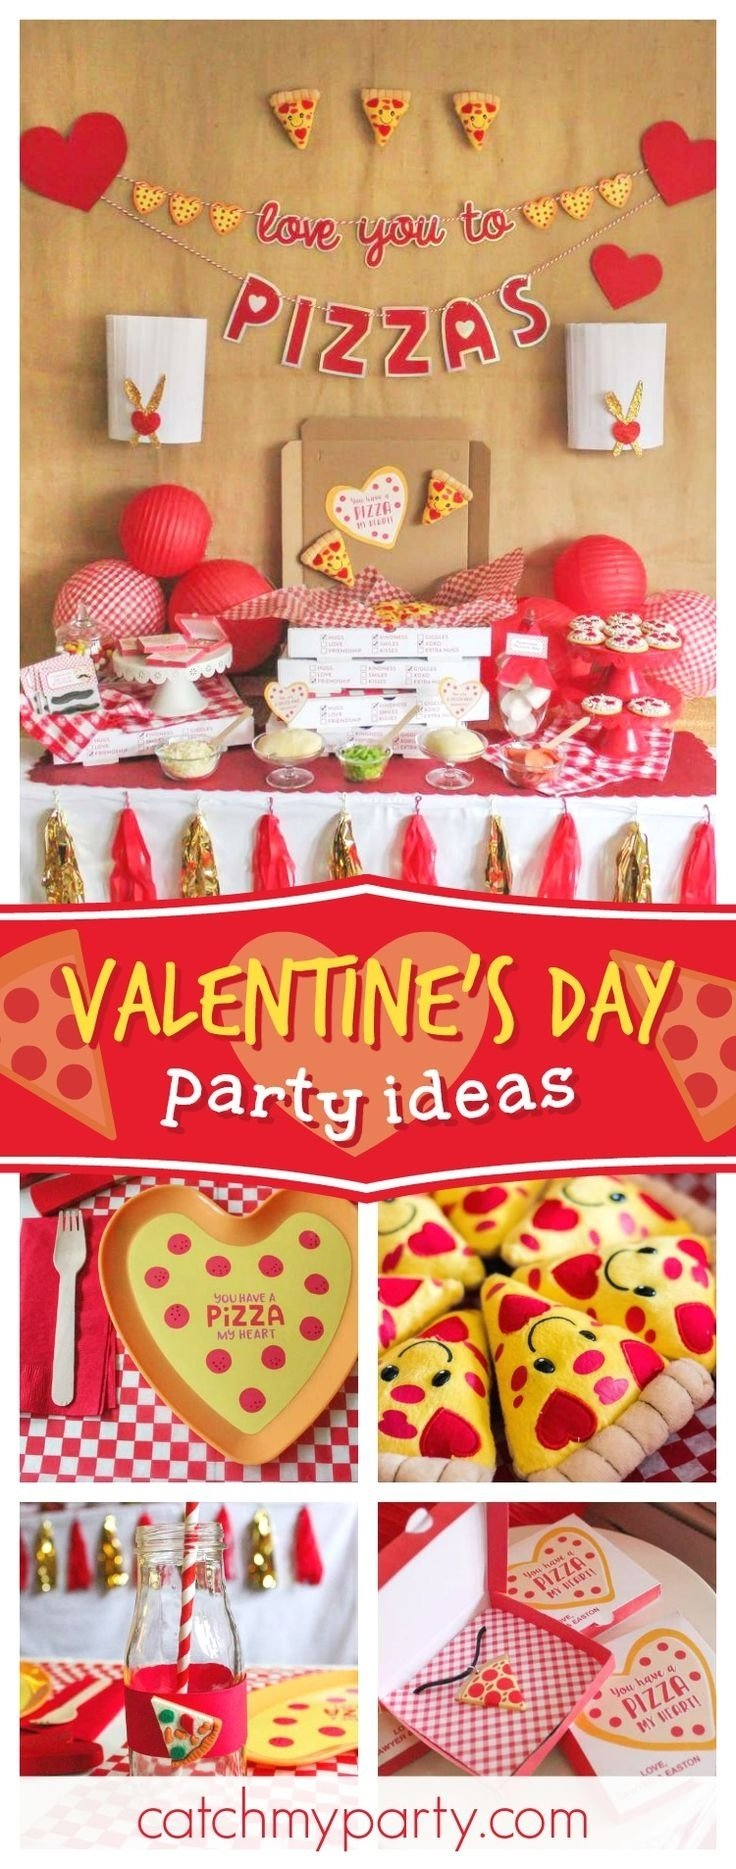 10 Unique Valentine Day Party Ideas For Adults 915 best valentines day party ideas images on pinterest